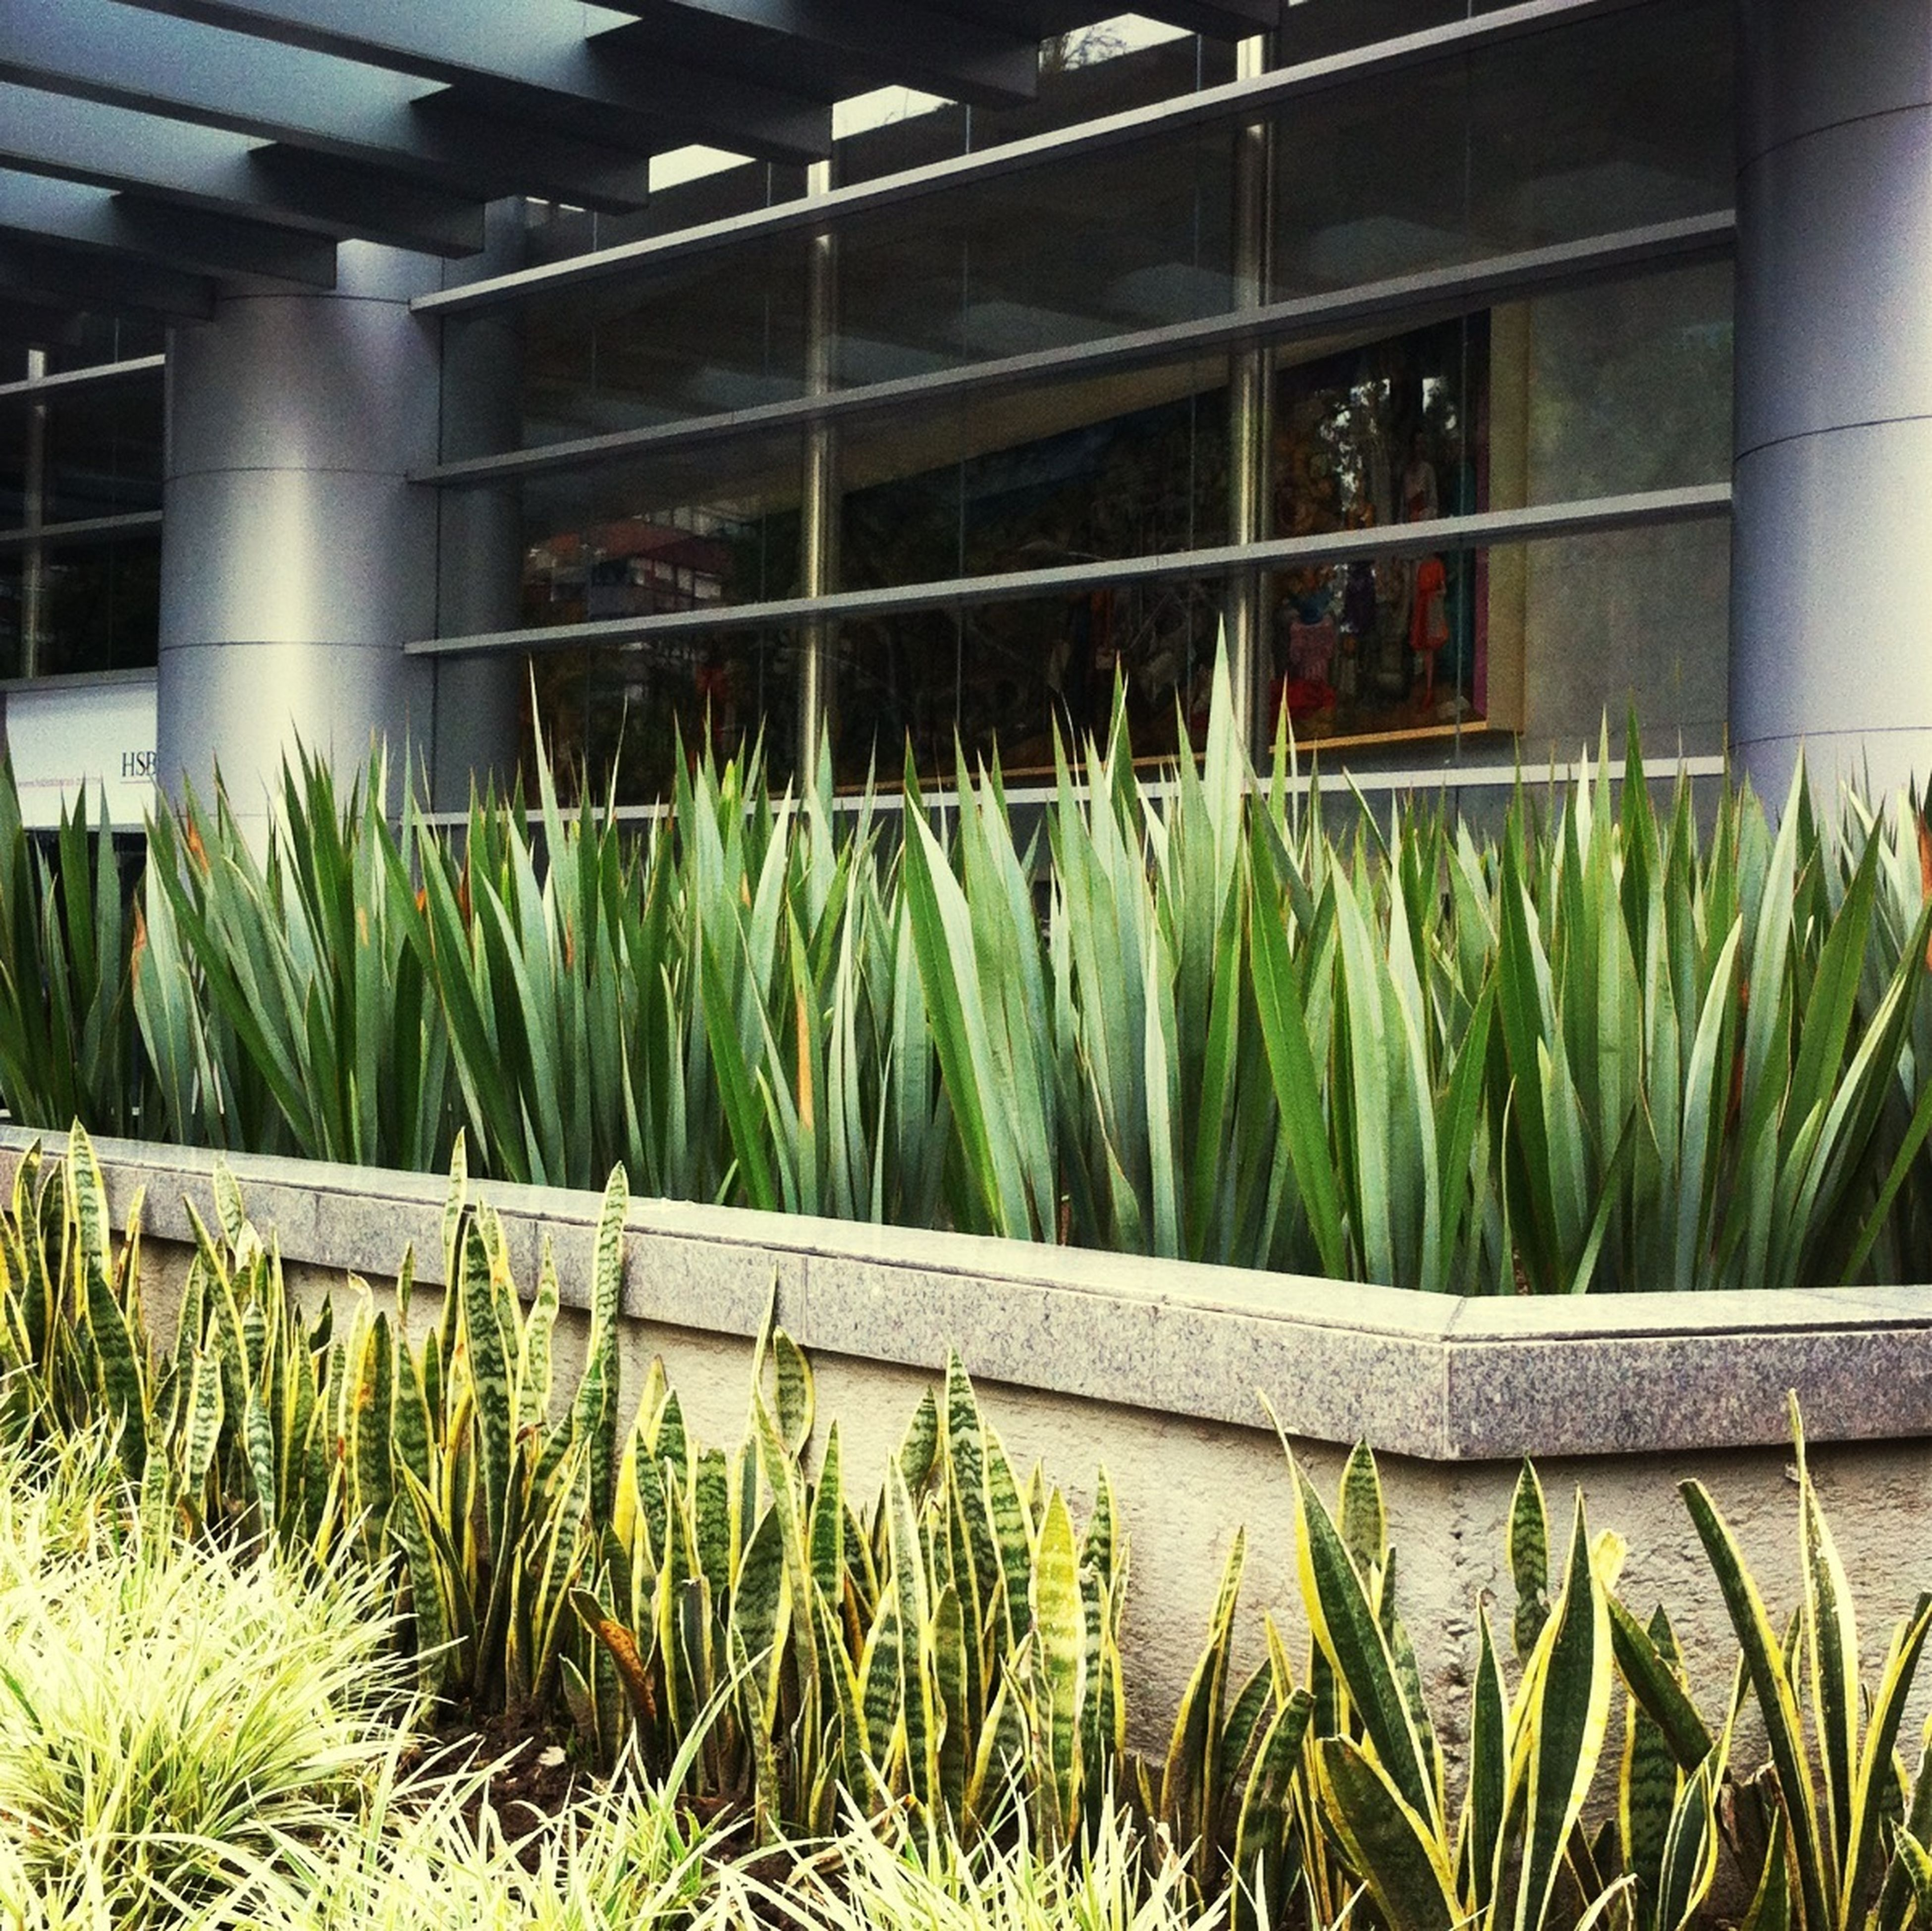 plant, growth, built structure, architecture, building exterior, grass, green color, house, growing, nature, potted plant, day, no people, window, outdoors, green, field, front or back yard, sunlight, water